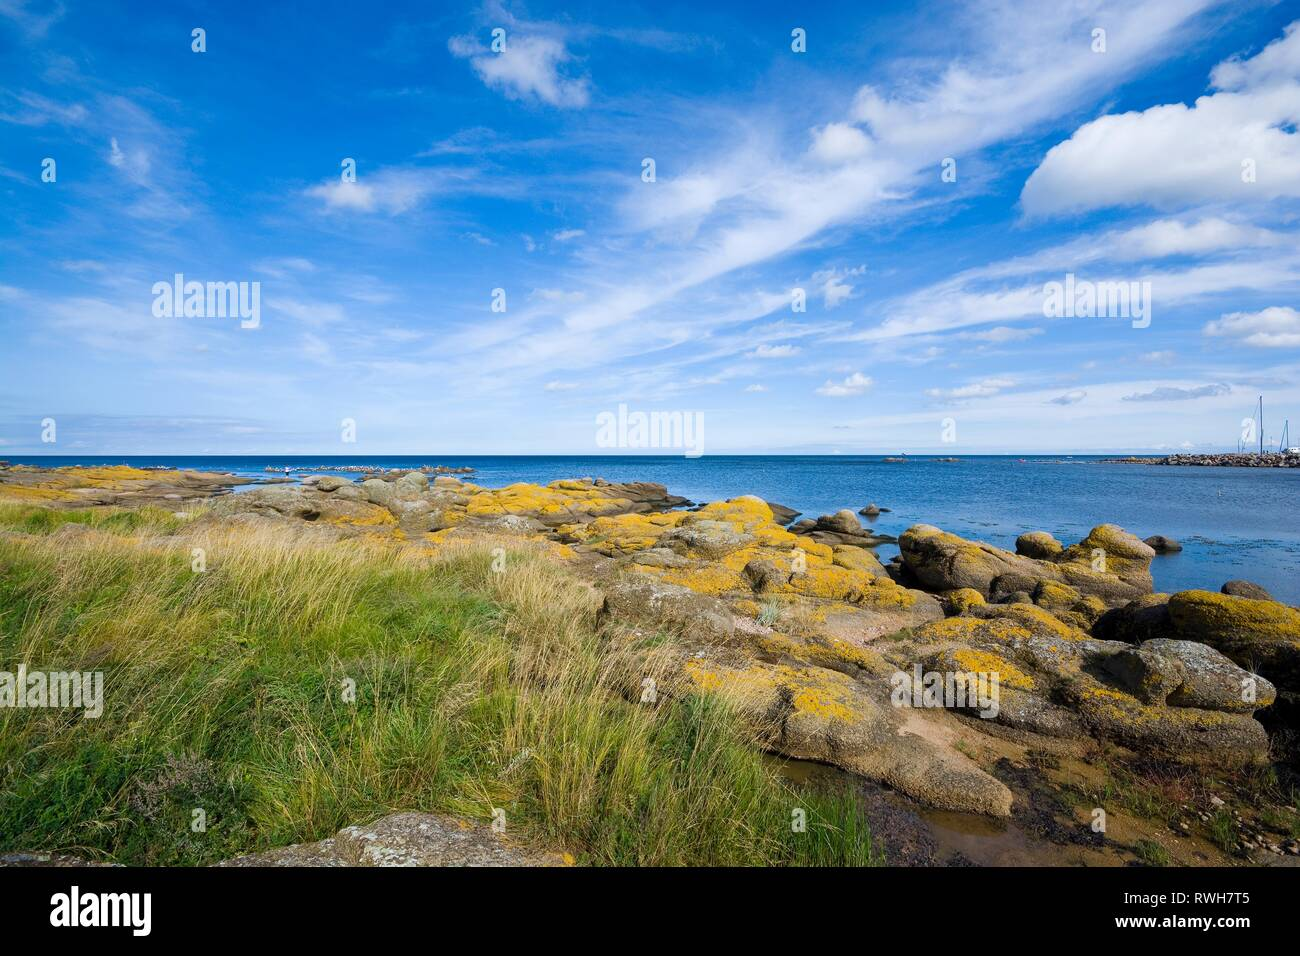 View of fishing hamlet on east coast of Bornholm island - Aarsdale, Denmark Stock Photo